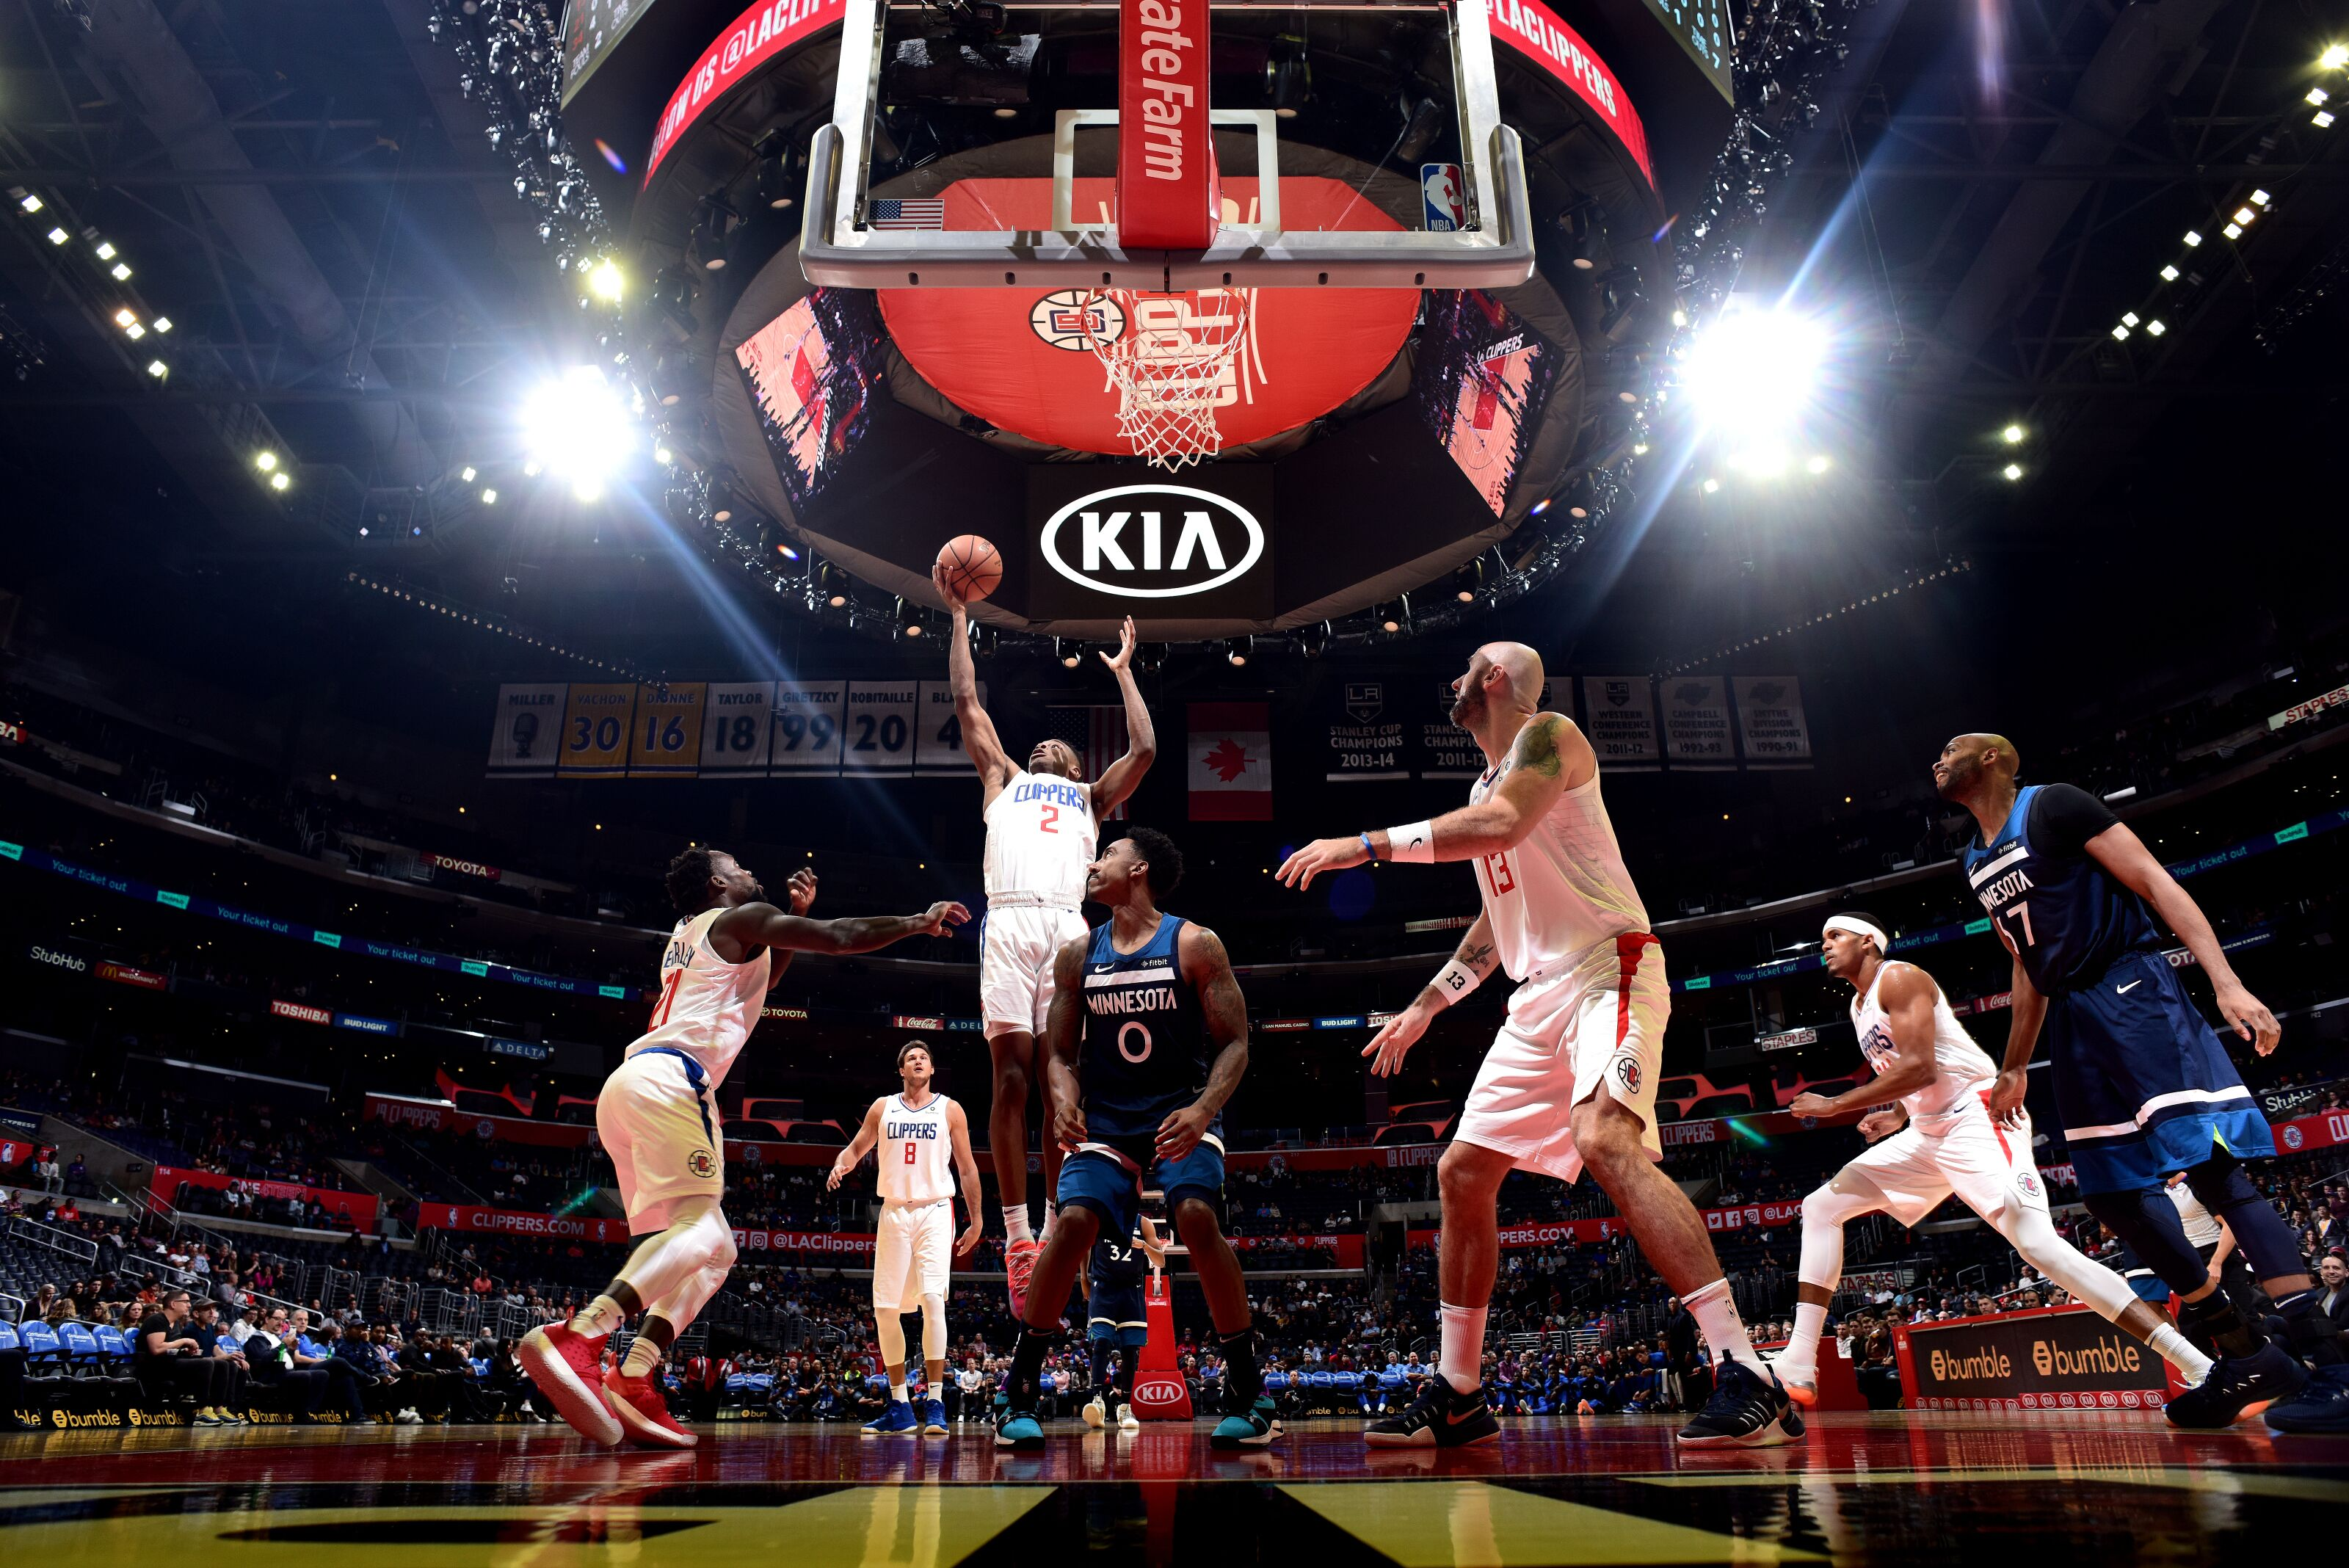 bd159c41bb5 Los Angeles Clippers: 3 takeaways from win versus Timberwolves - Page 2